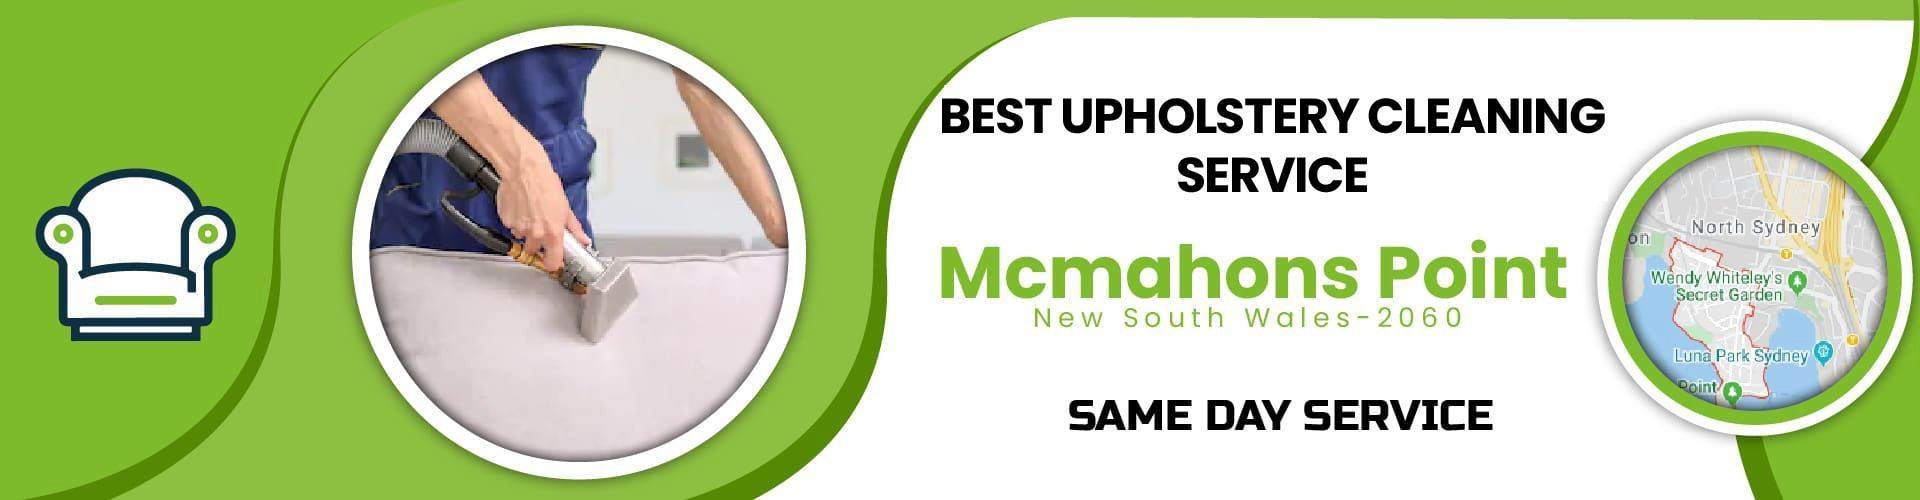 Upholstery Cleaning Mcmahons Point